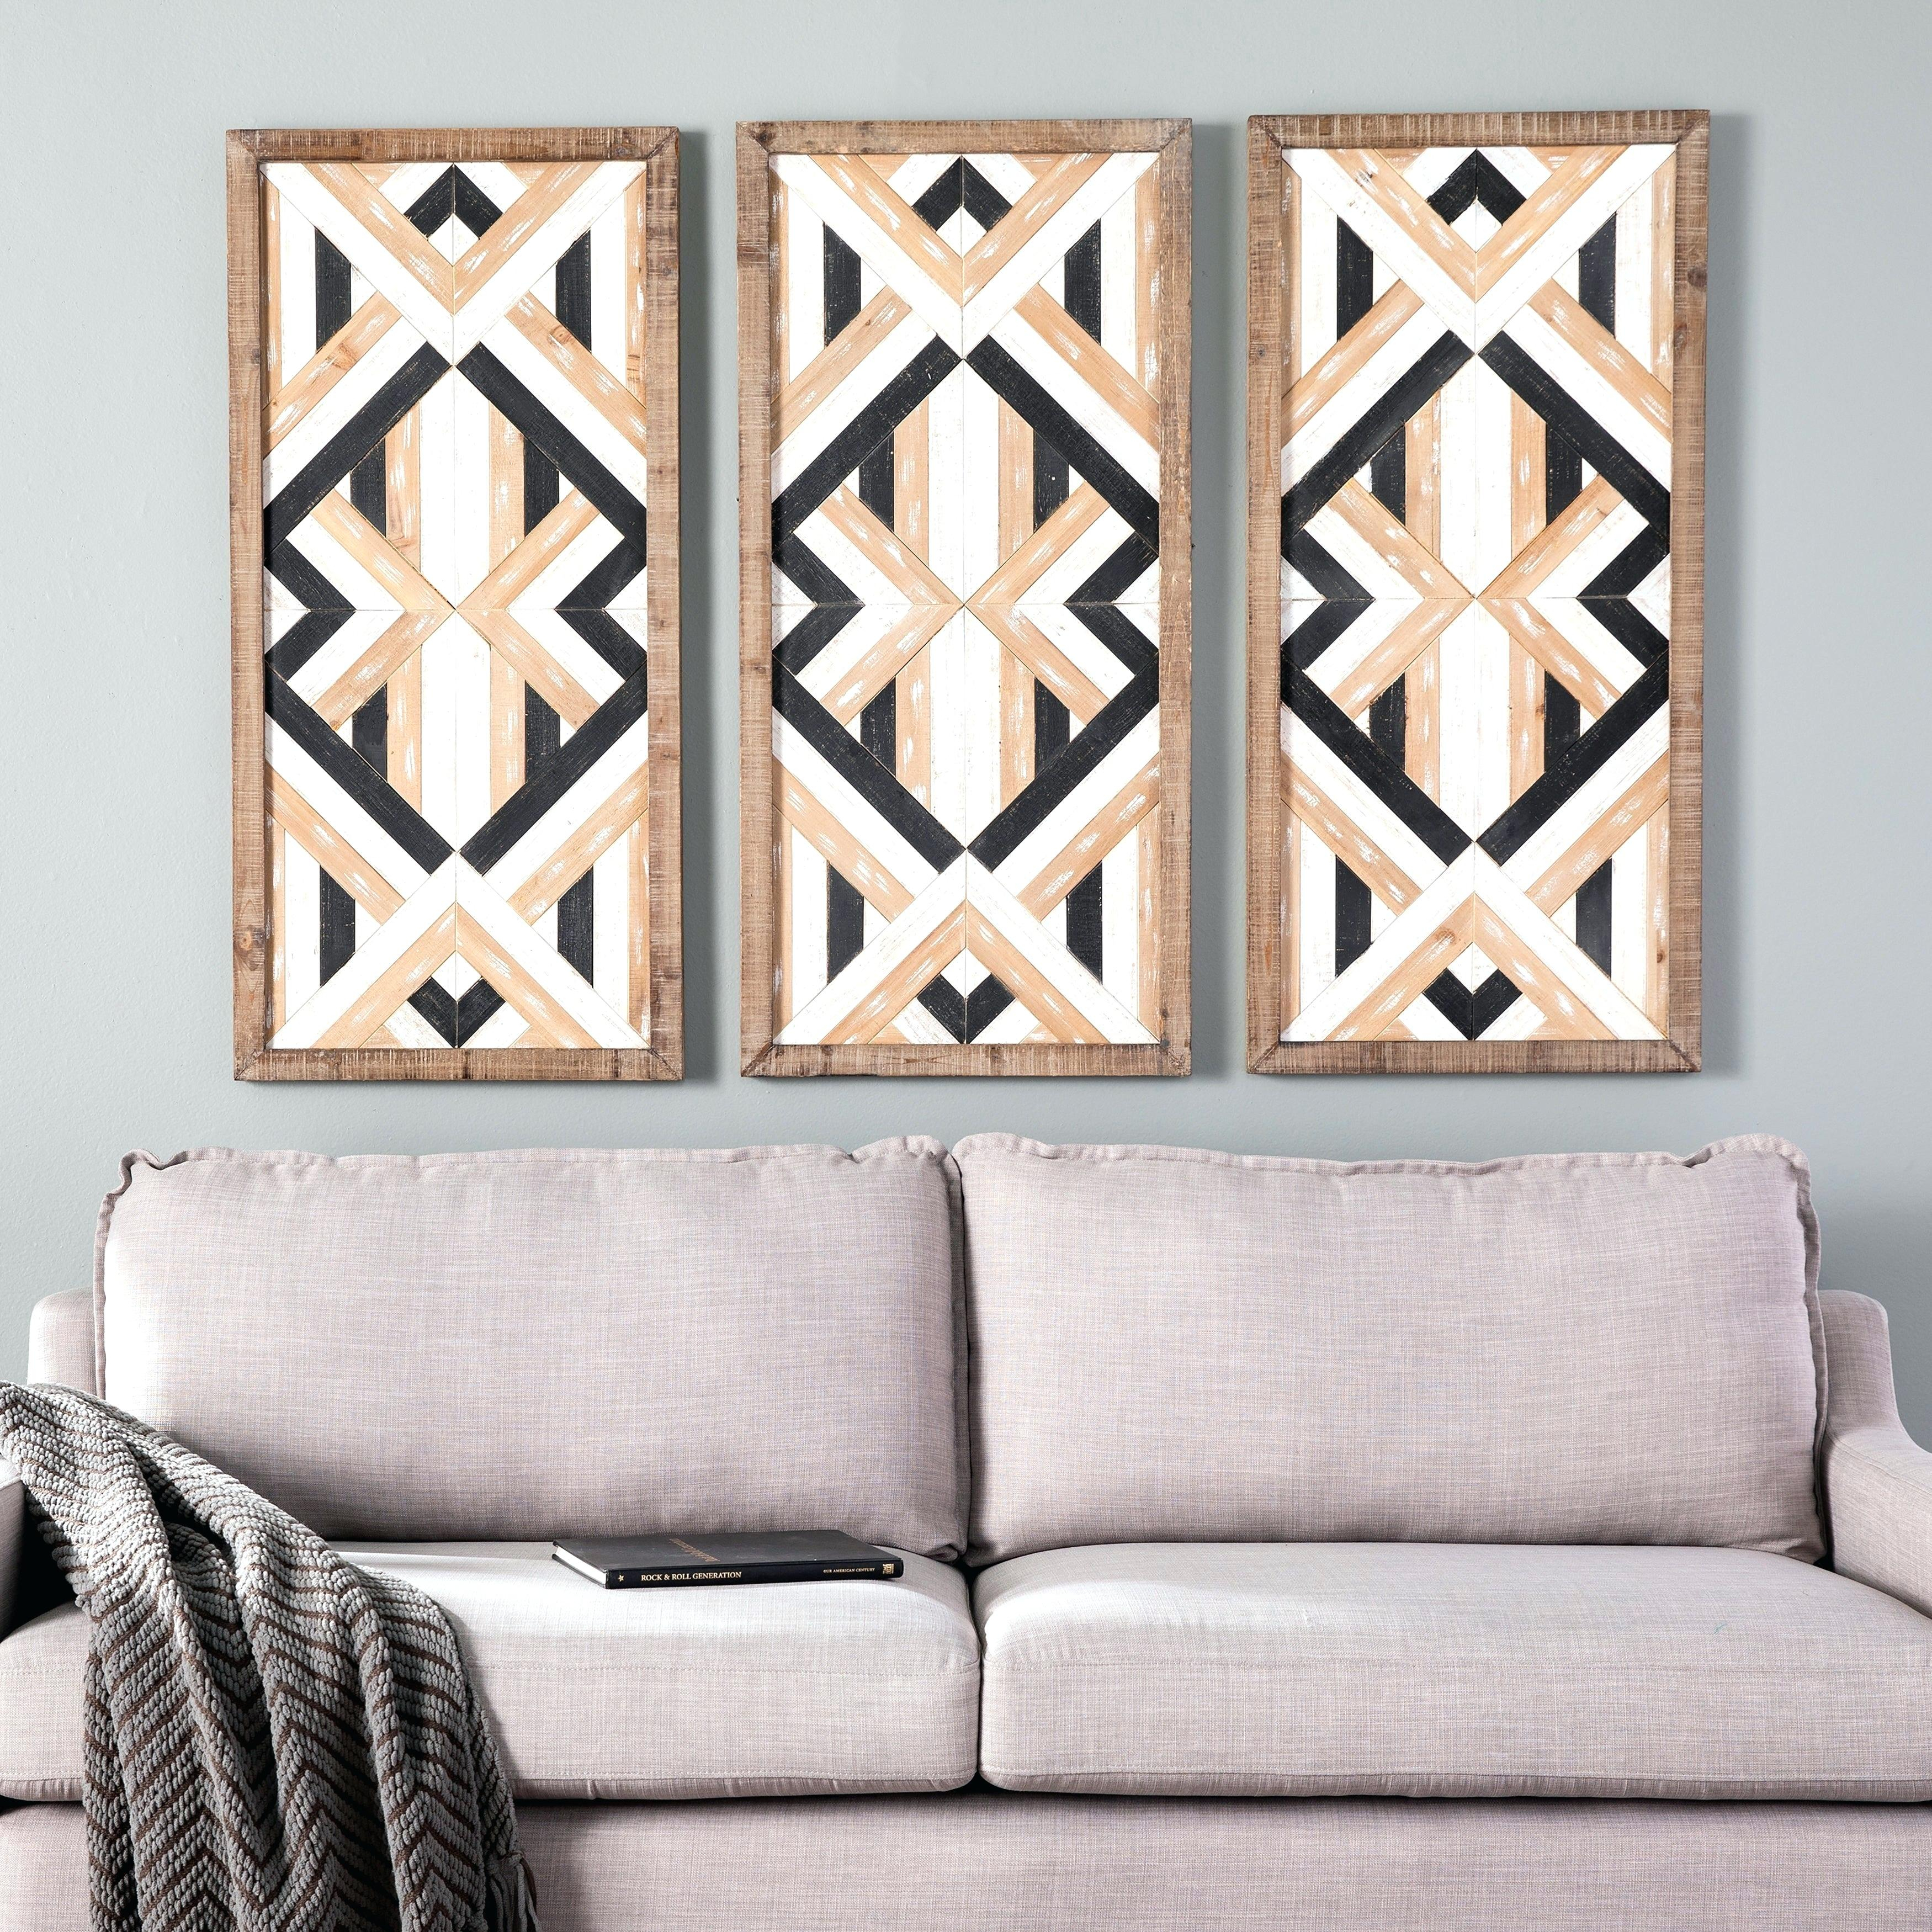 Decorative Wall Pictures – Onthehorizon.co Regarding Bem Decorative Wall Mirrors (Gallery 29 of 30)